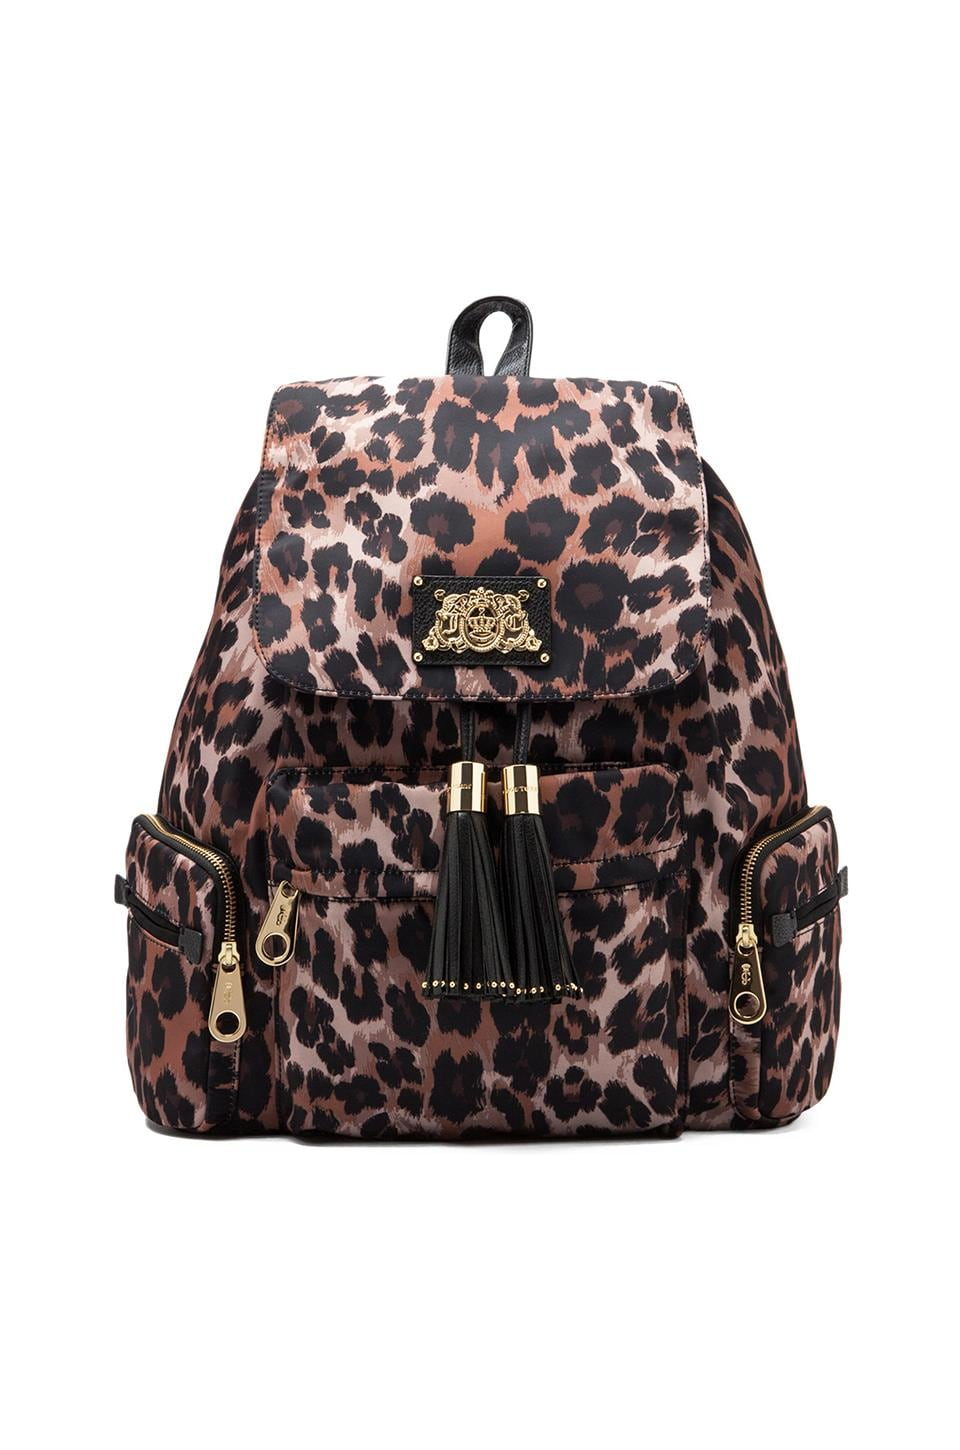 Juicy Couture East Everyday Nylon Backpack in Brown Leopard